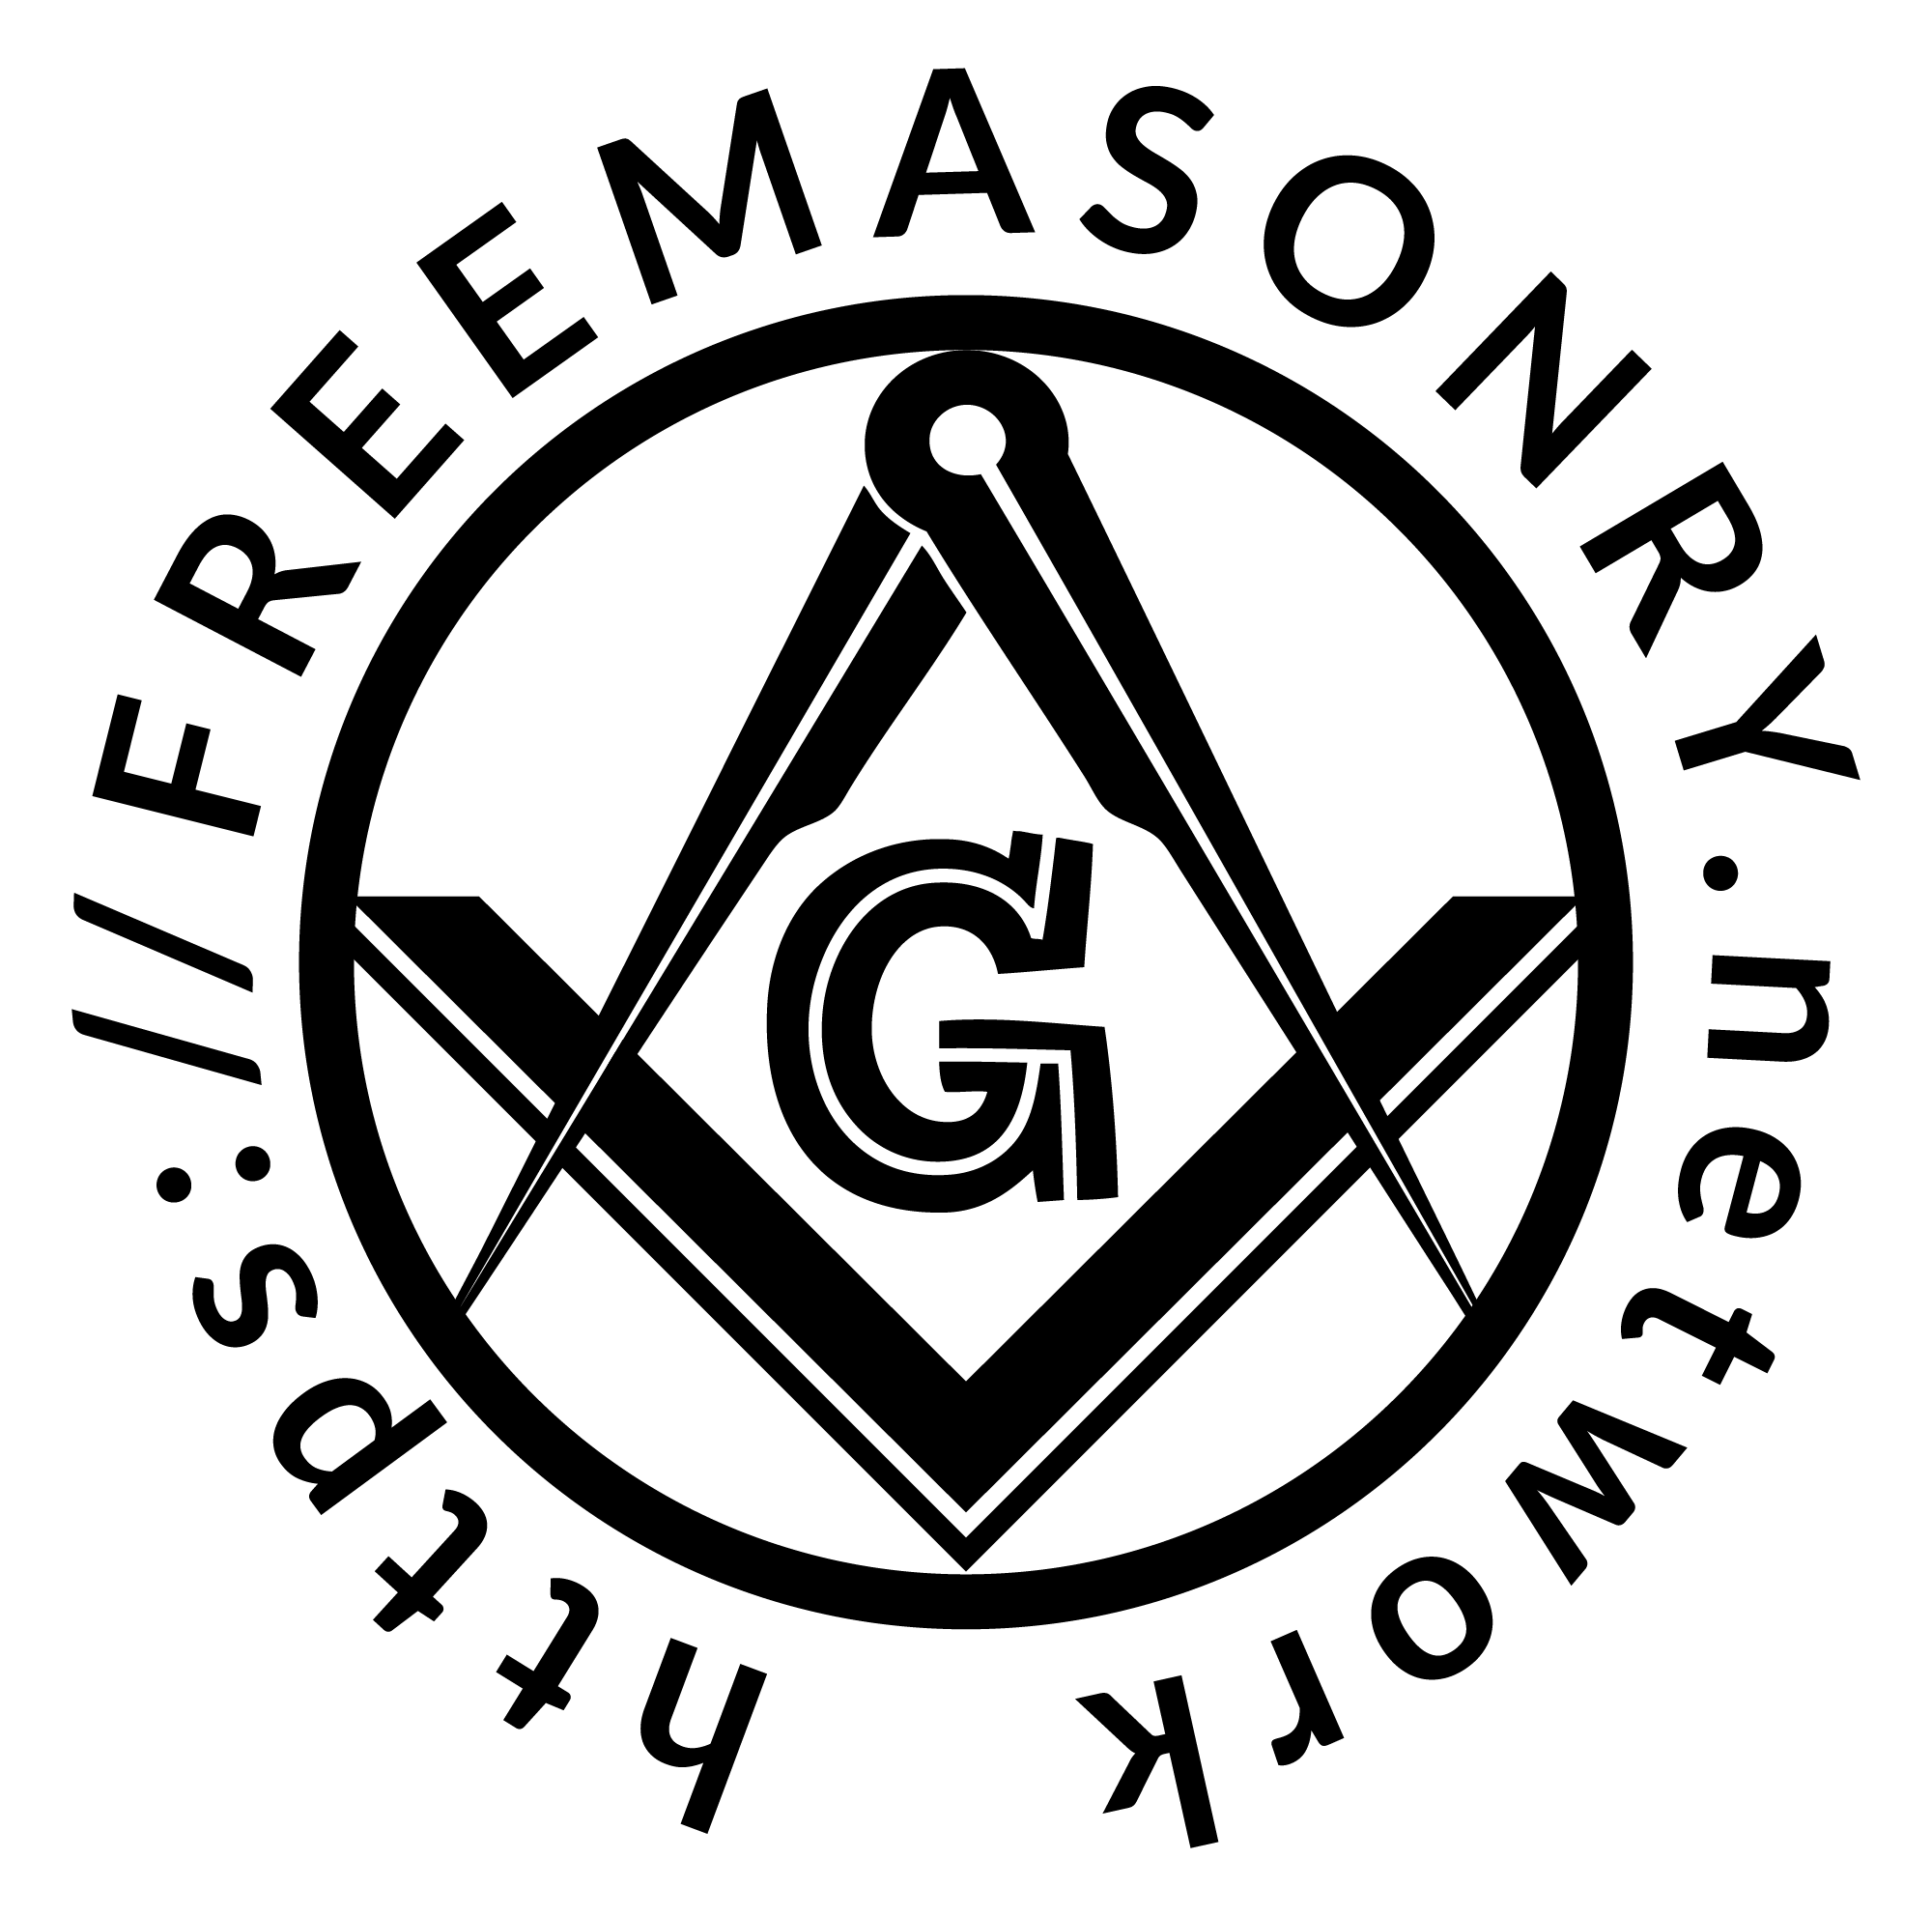 American CO-Masonry, American Le Droit Humain, Co-Masonry in the US, Le Droit Humain in the US